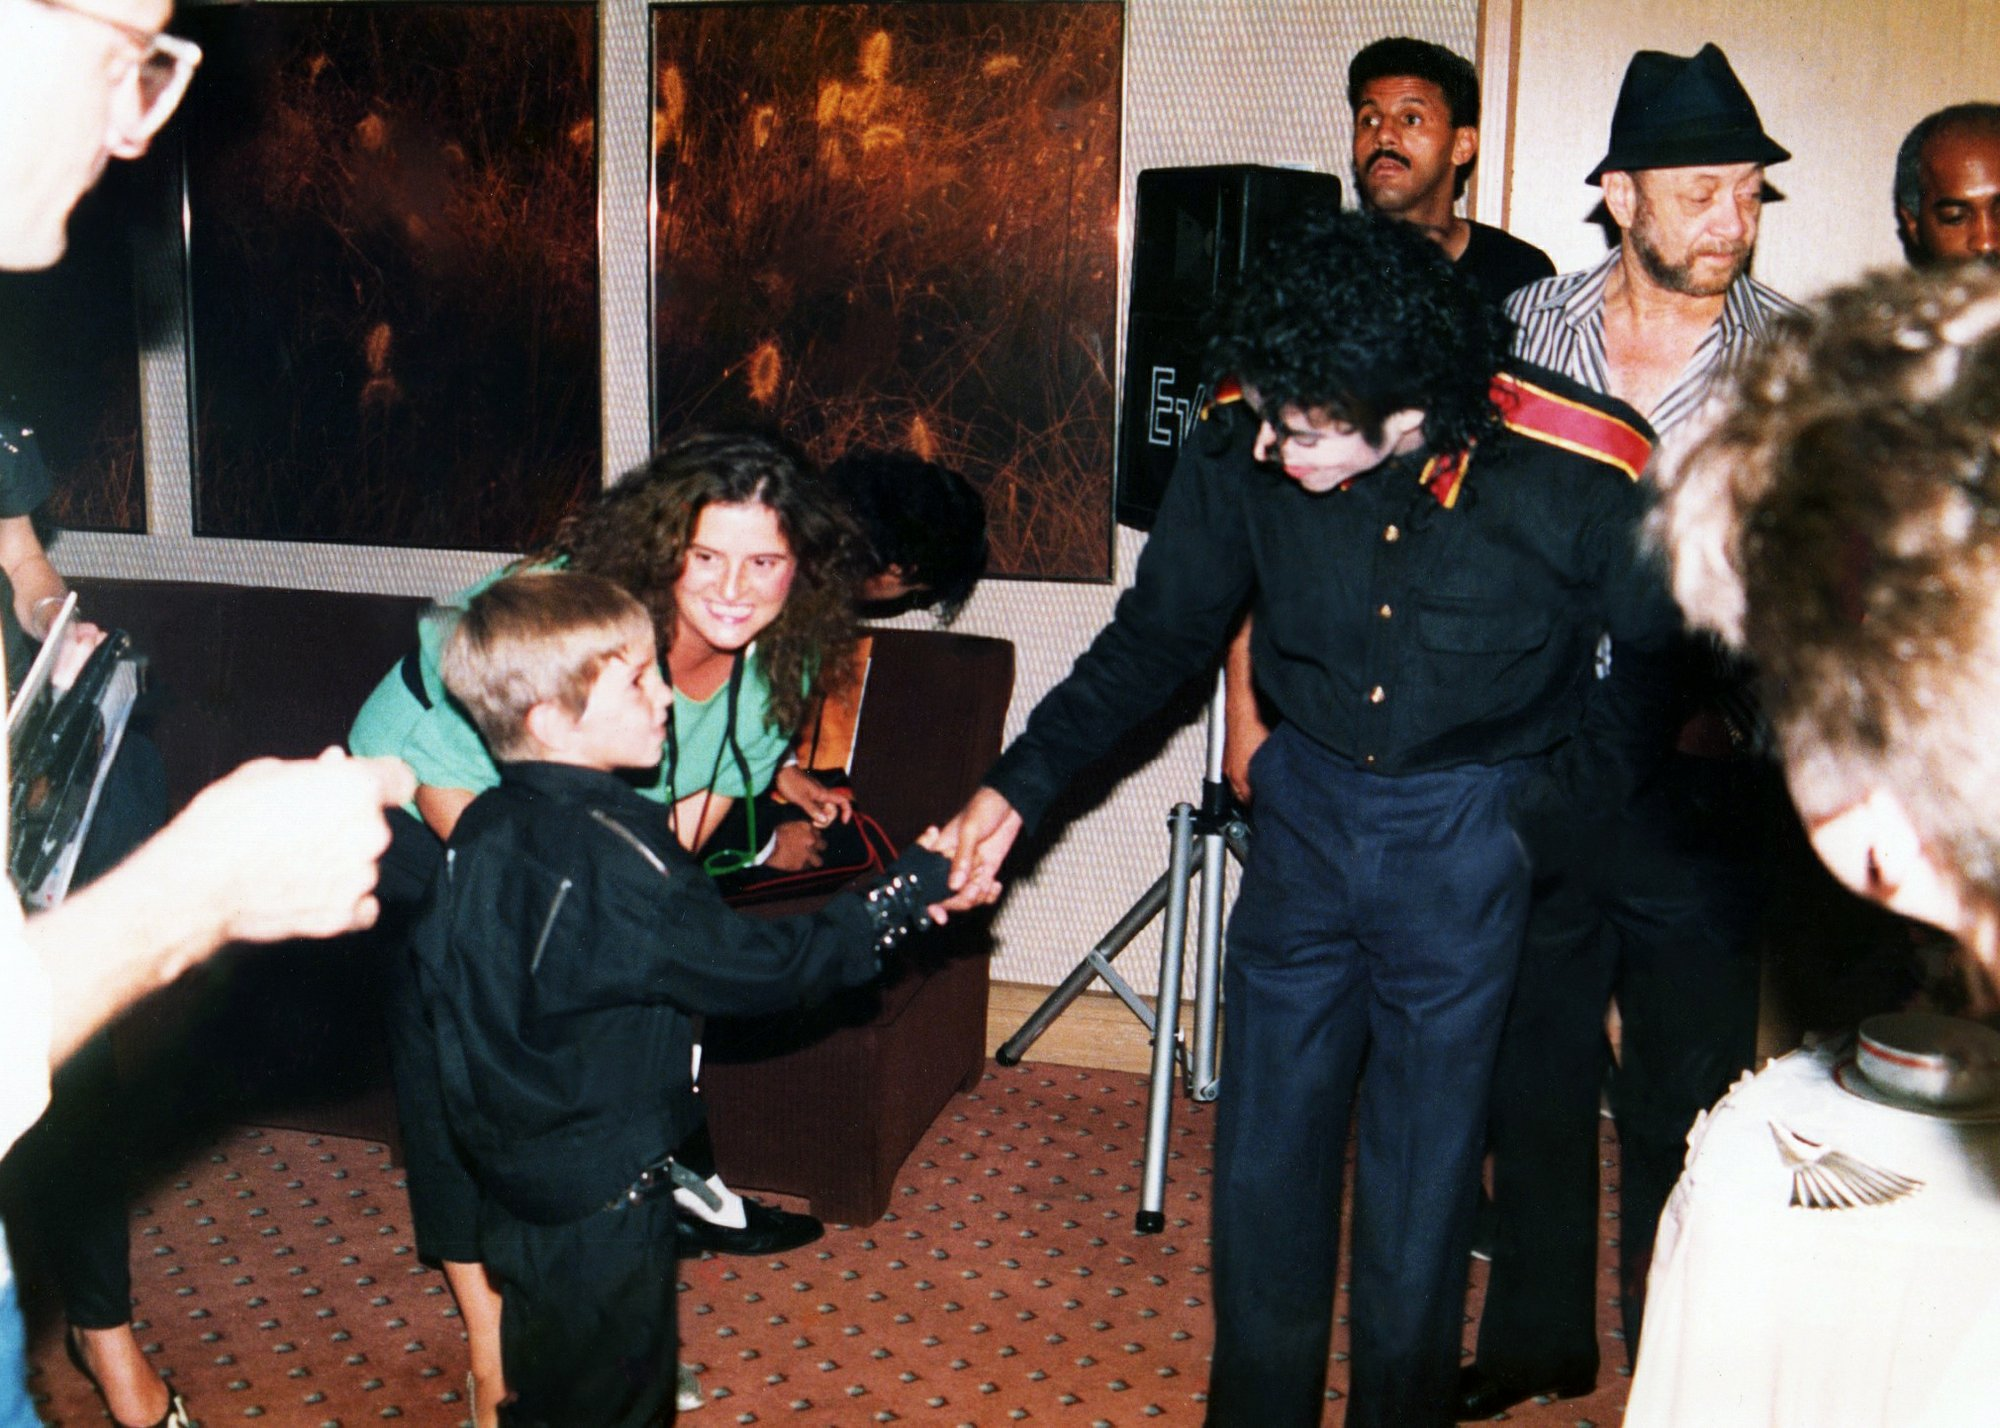 HBO's doc 'Leaving Neverland' becomes a network favorite